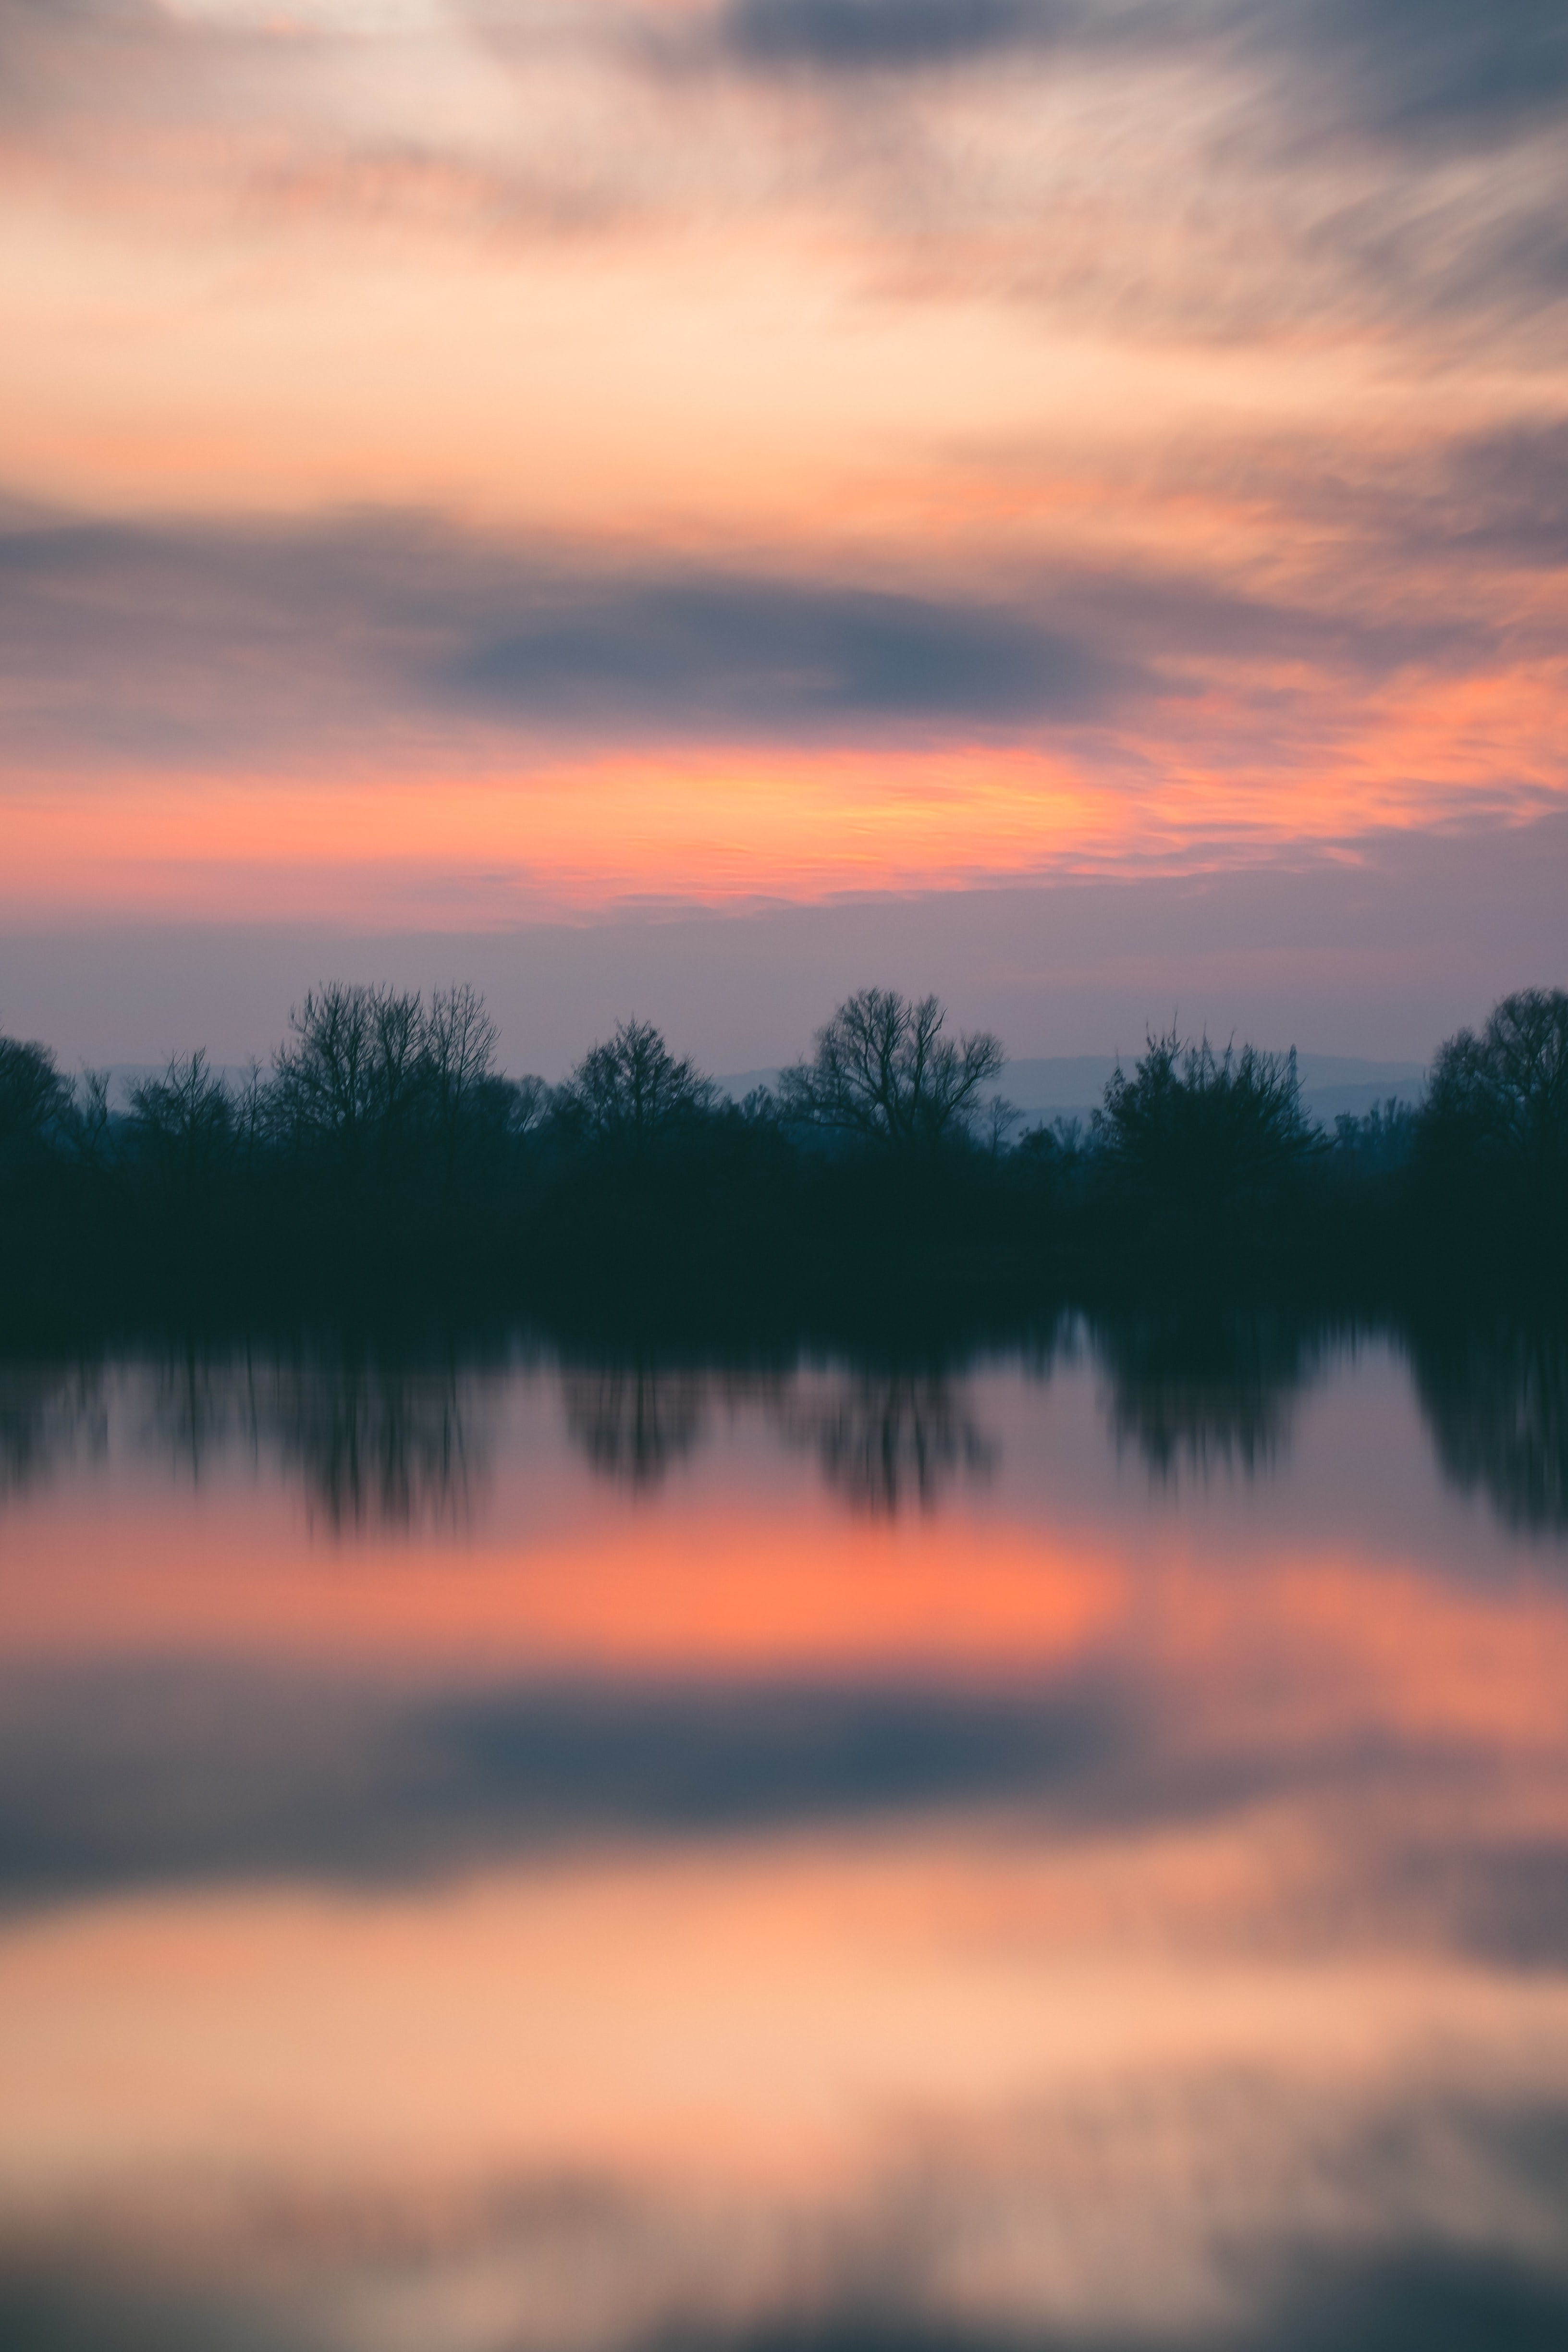 silhouette of trees near in the river